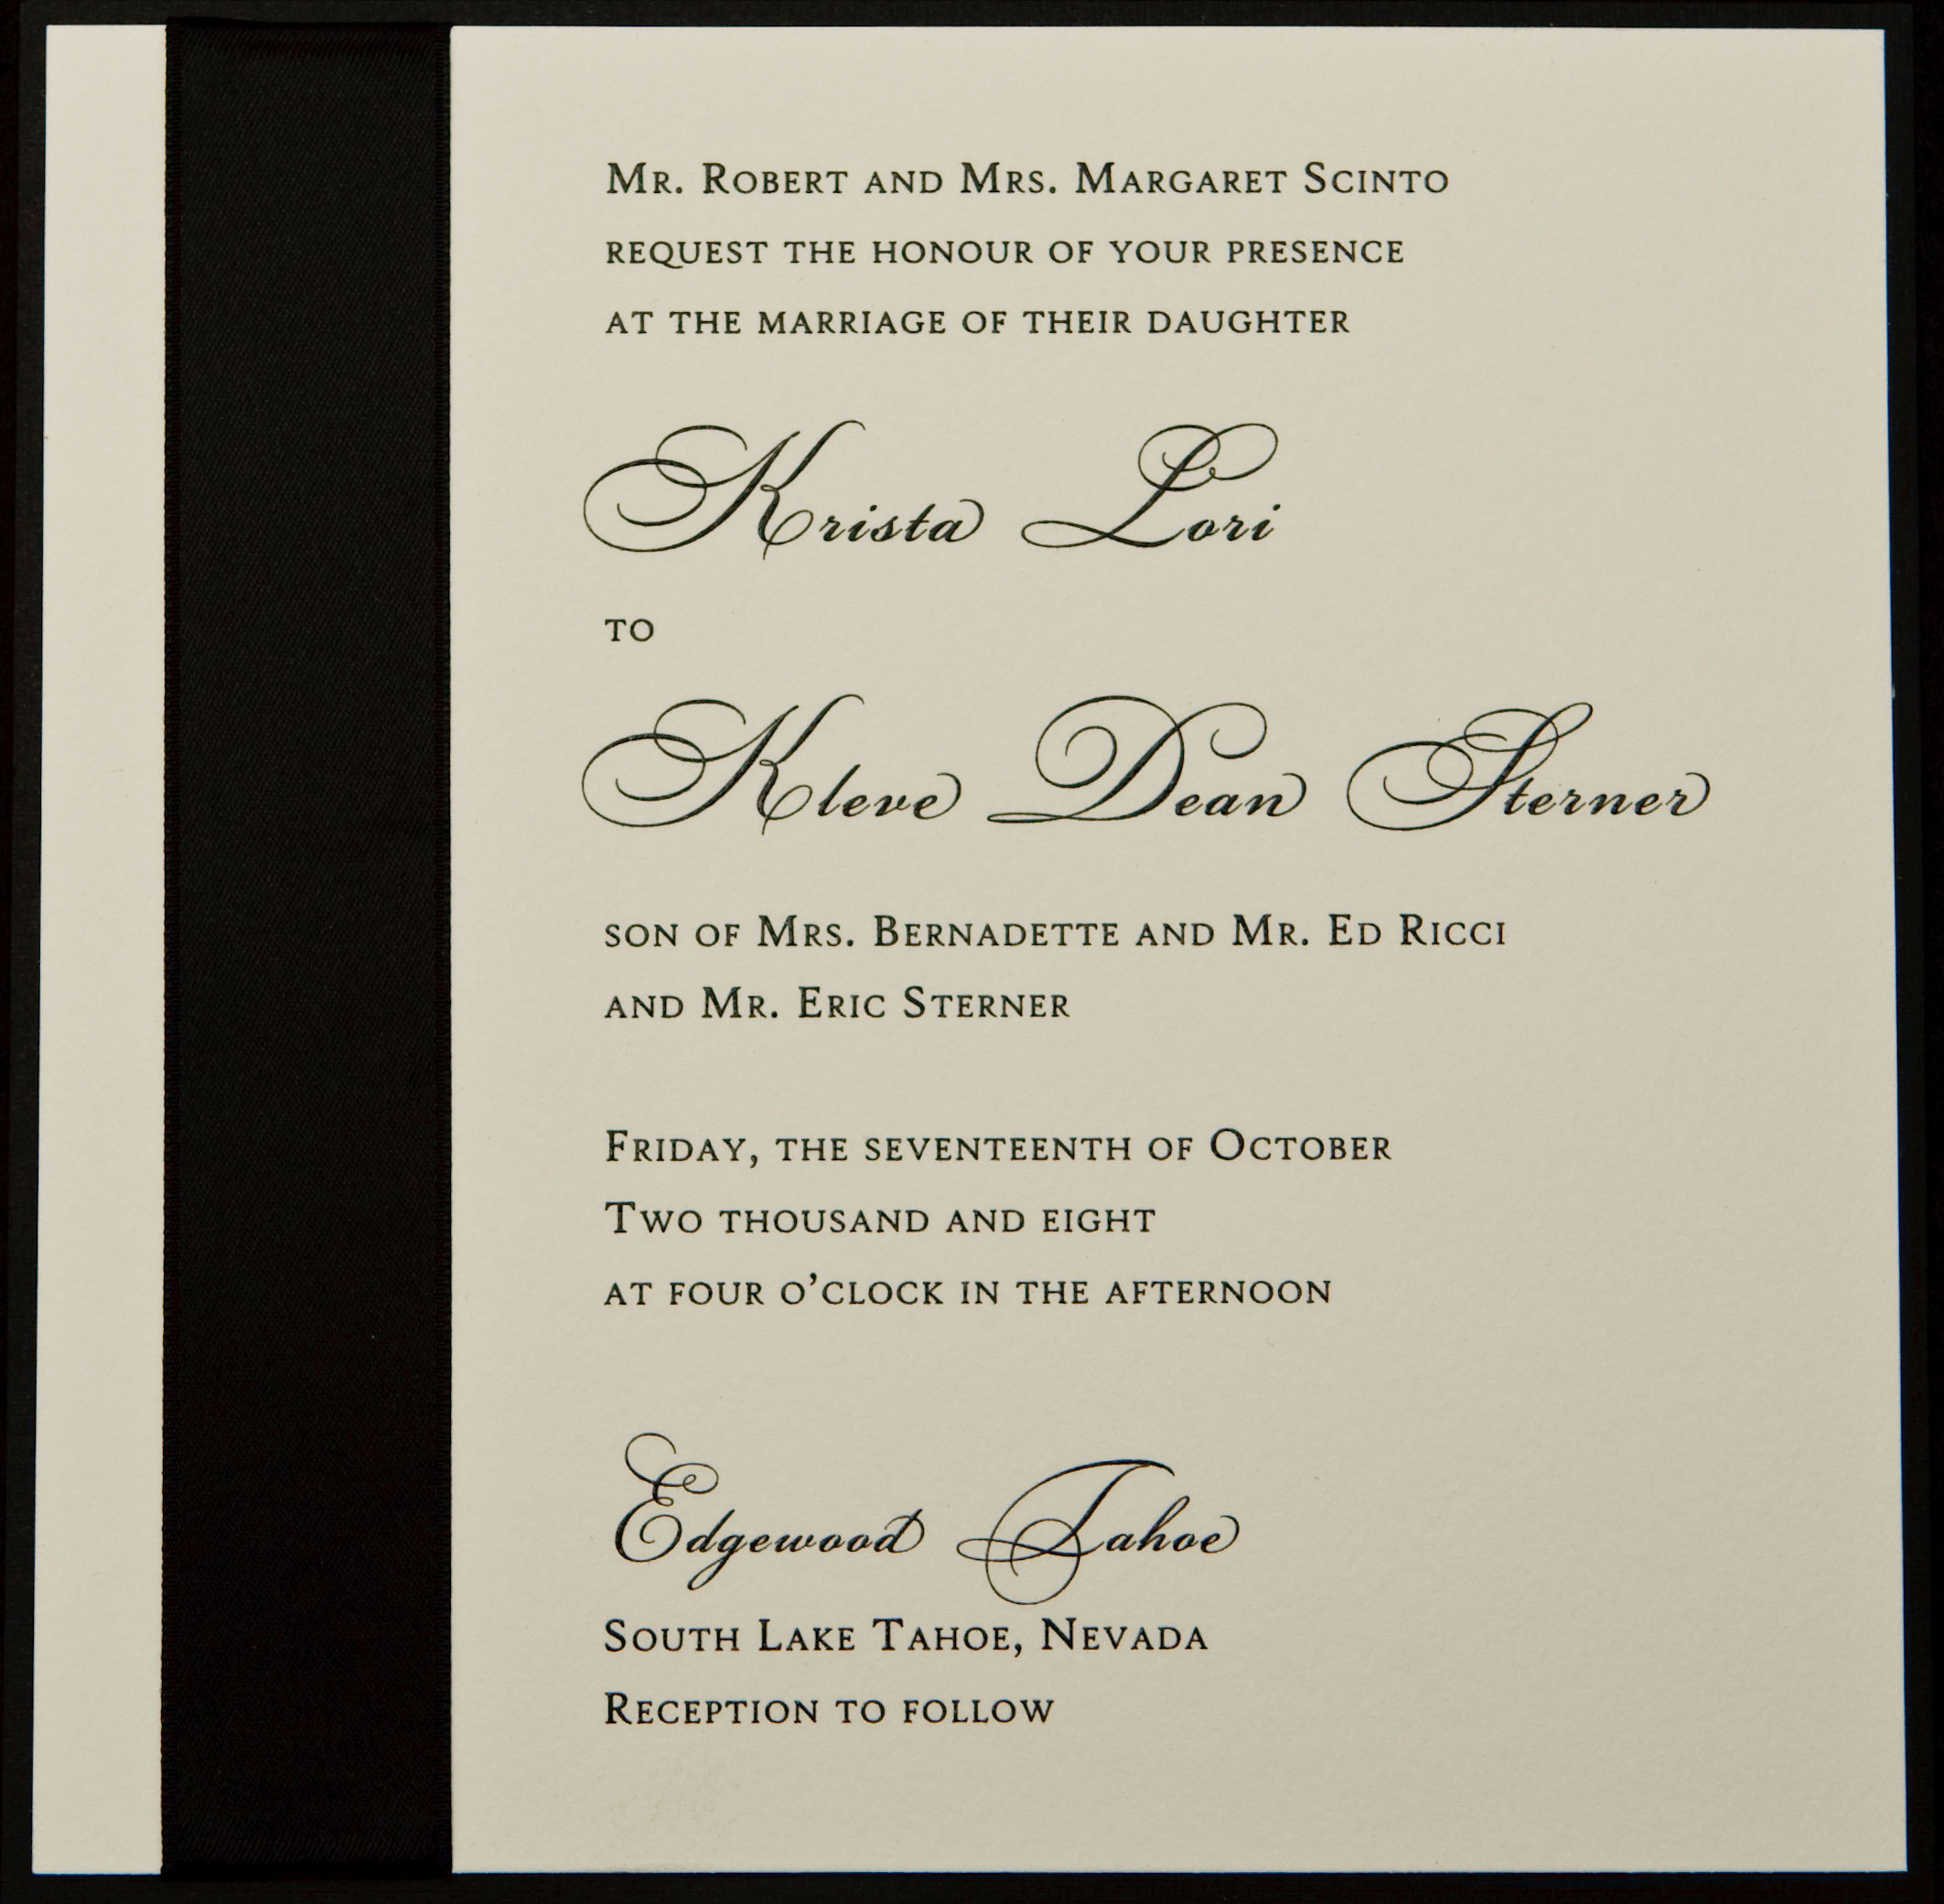 Stationery, white, black, invitation, Square, Invitations, Black and white, Ribbon, Proskalo inc